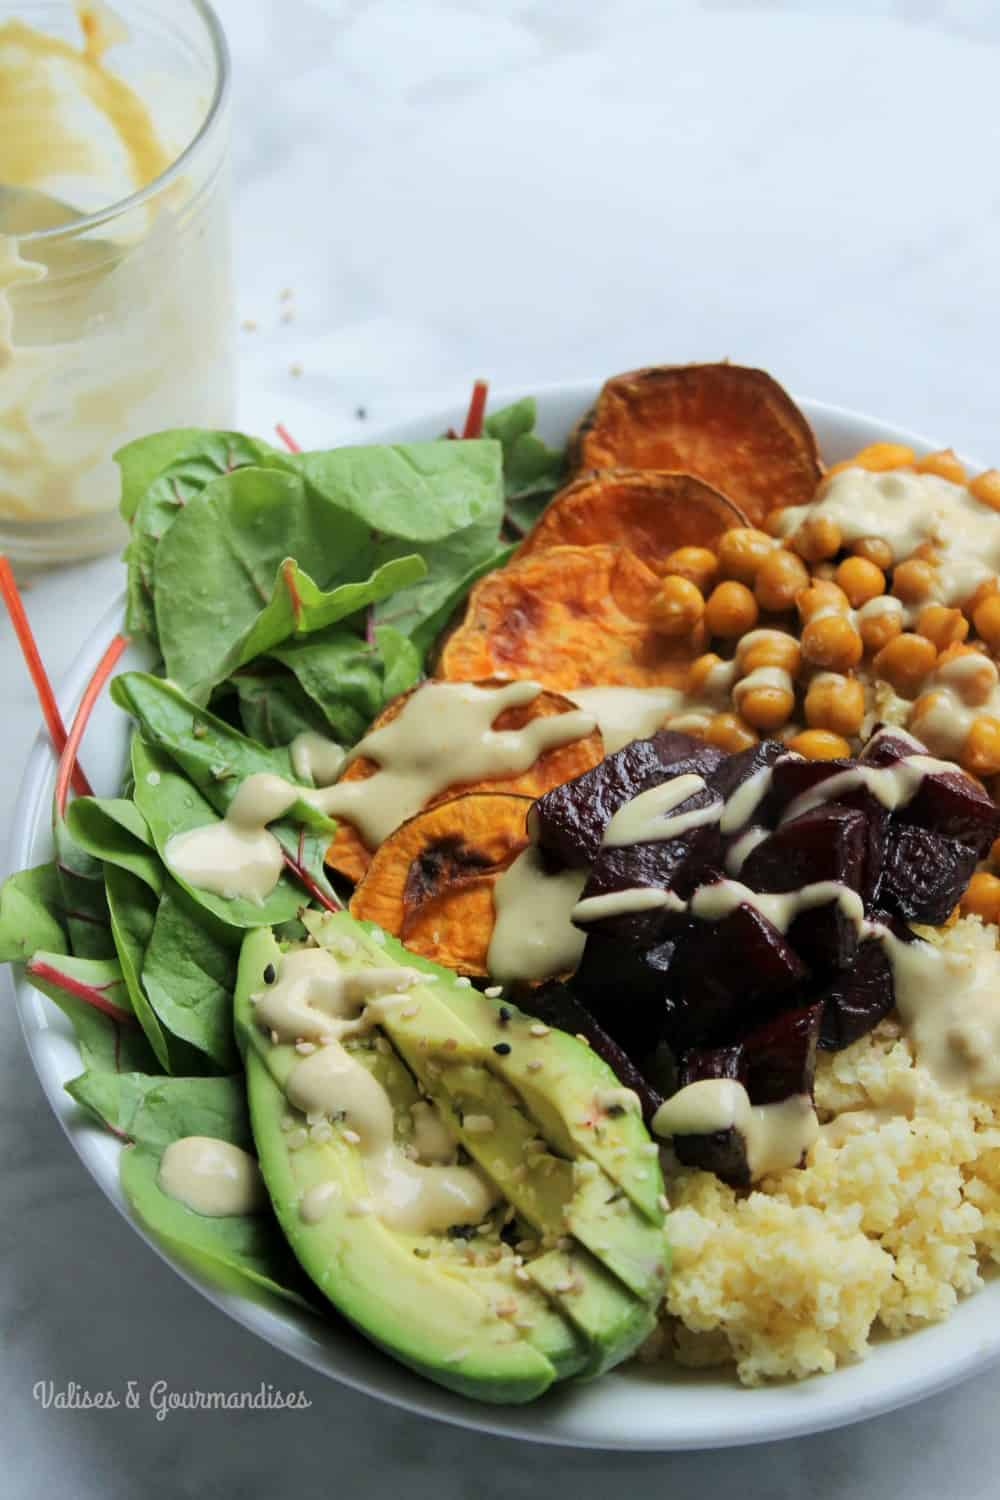 How to make a Buddha Bowl - Valises & Gourmandises